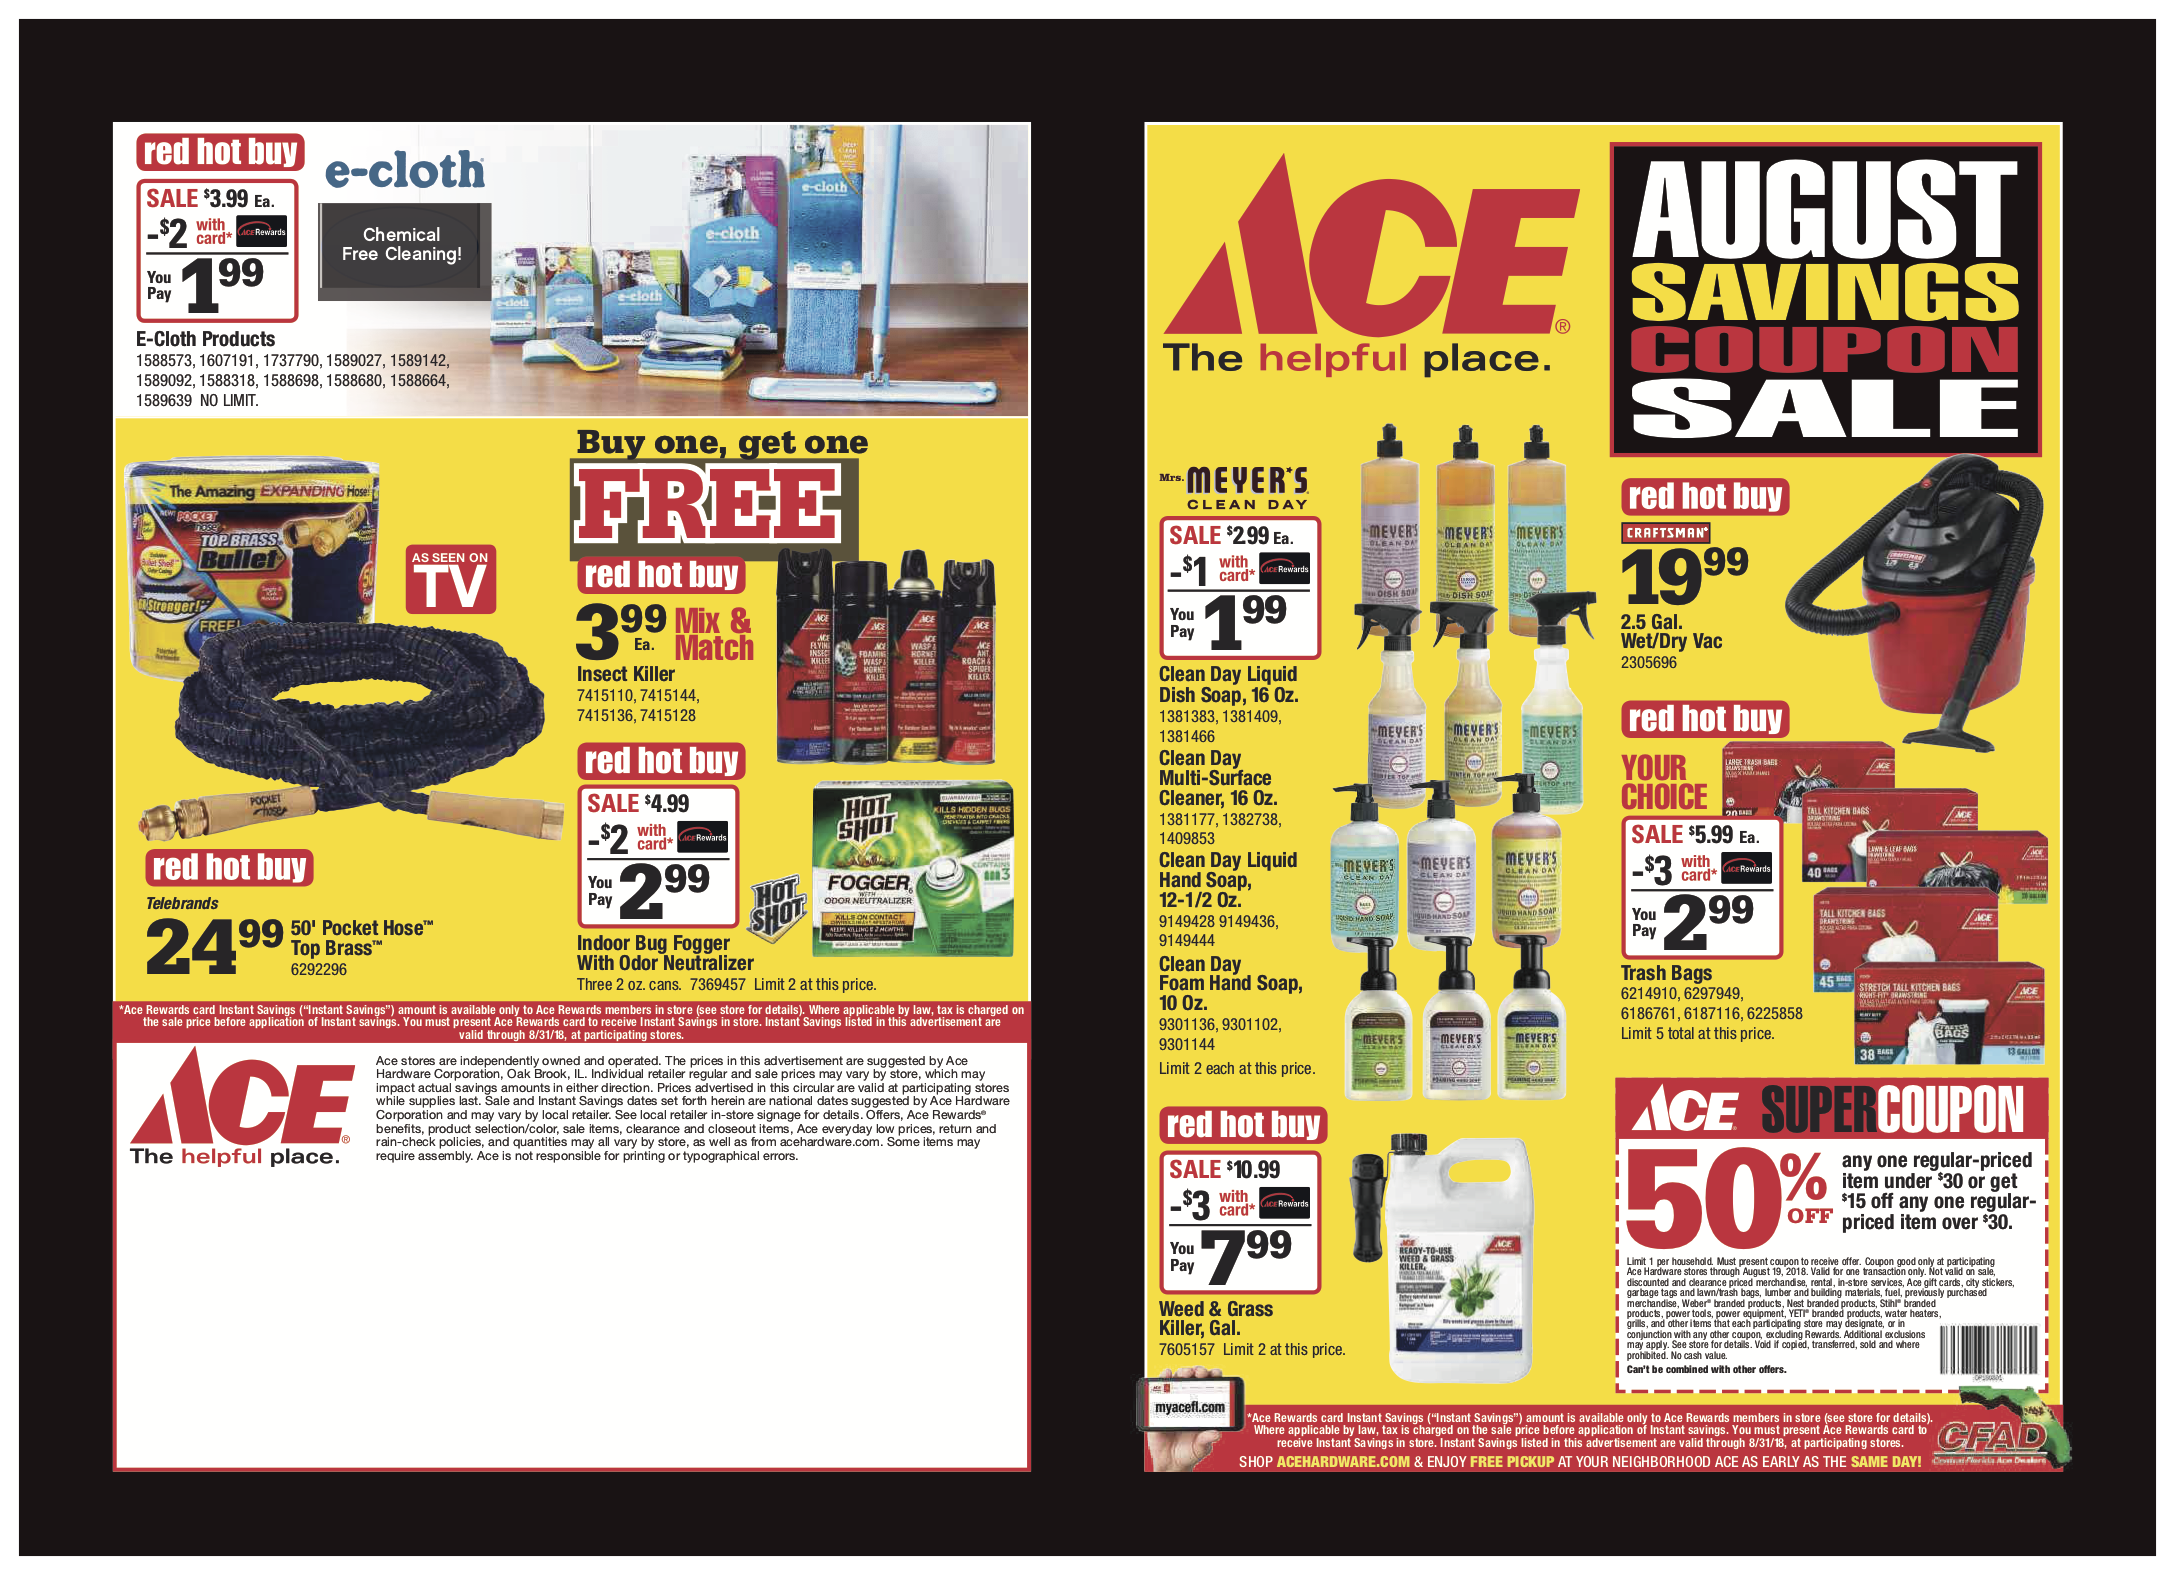 August Savings Coupon Sale